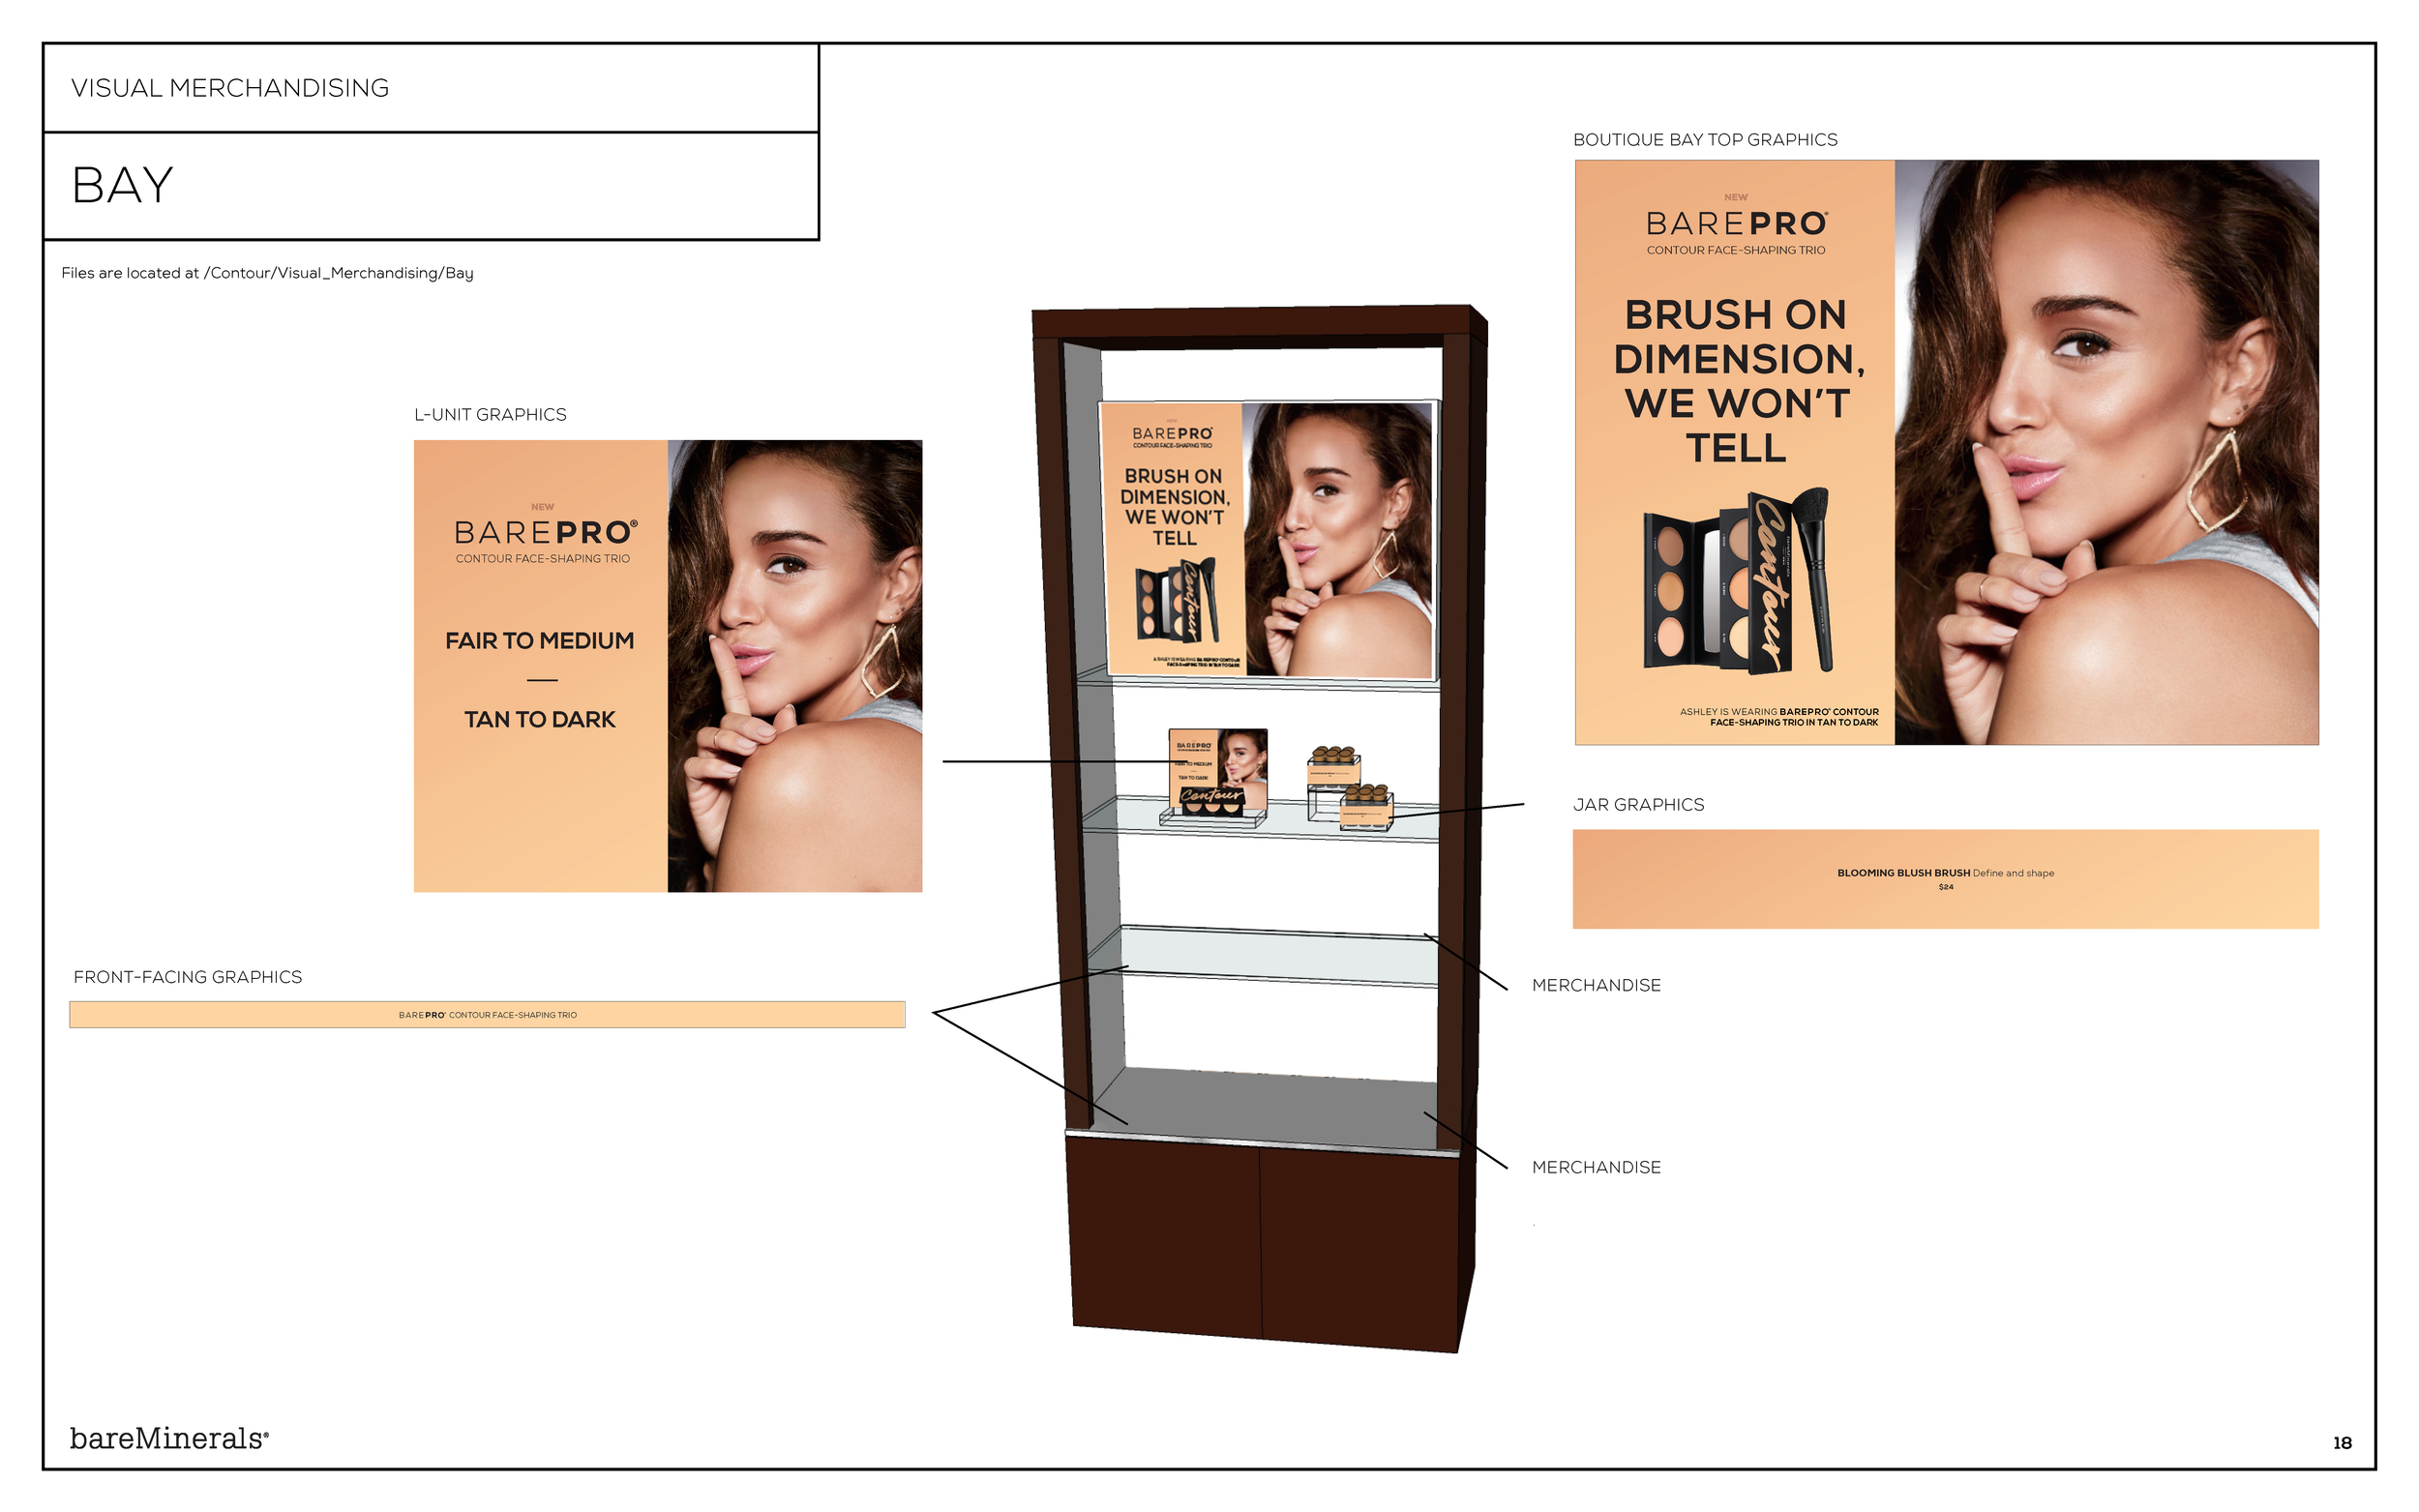 barePro_Contour_Toolkit_042117_Page_18.png